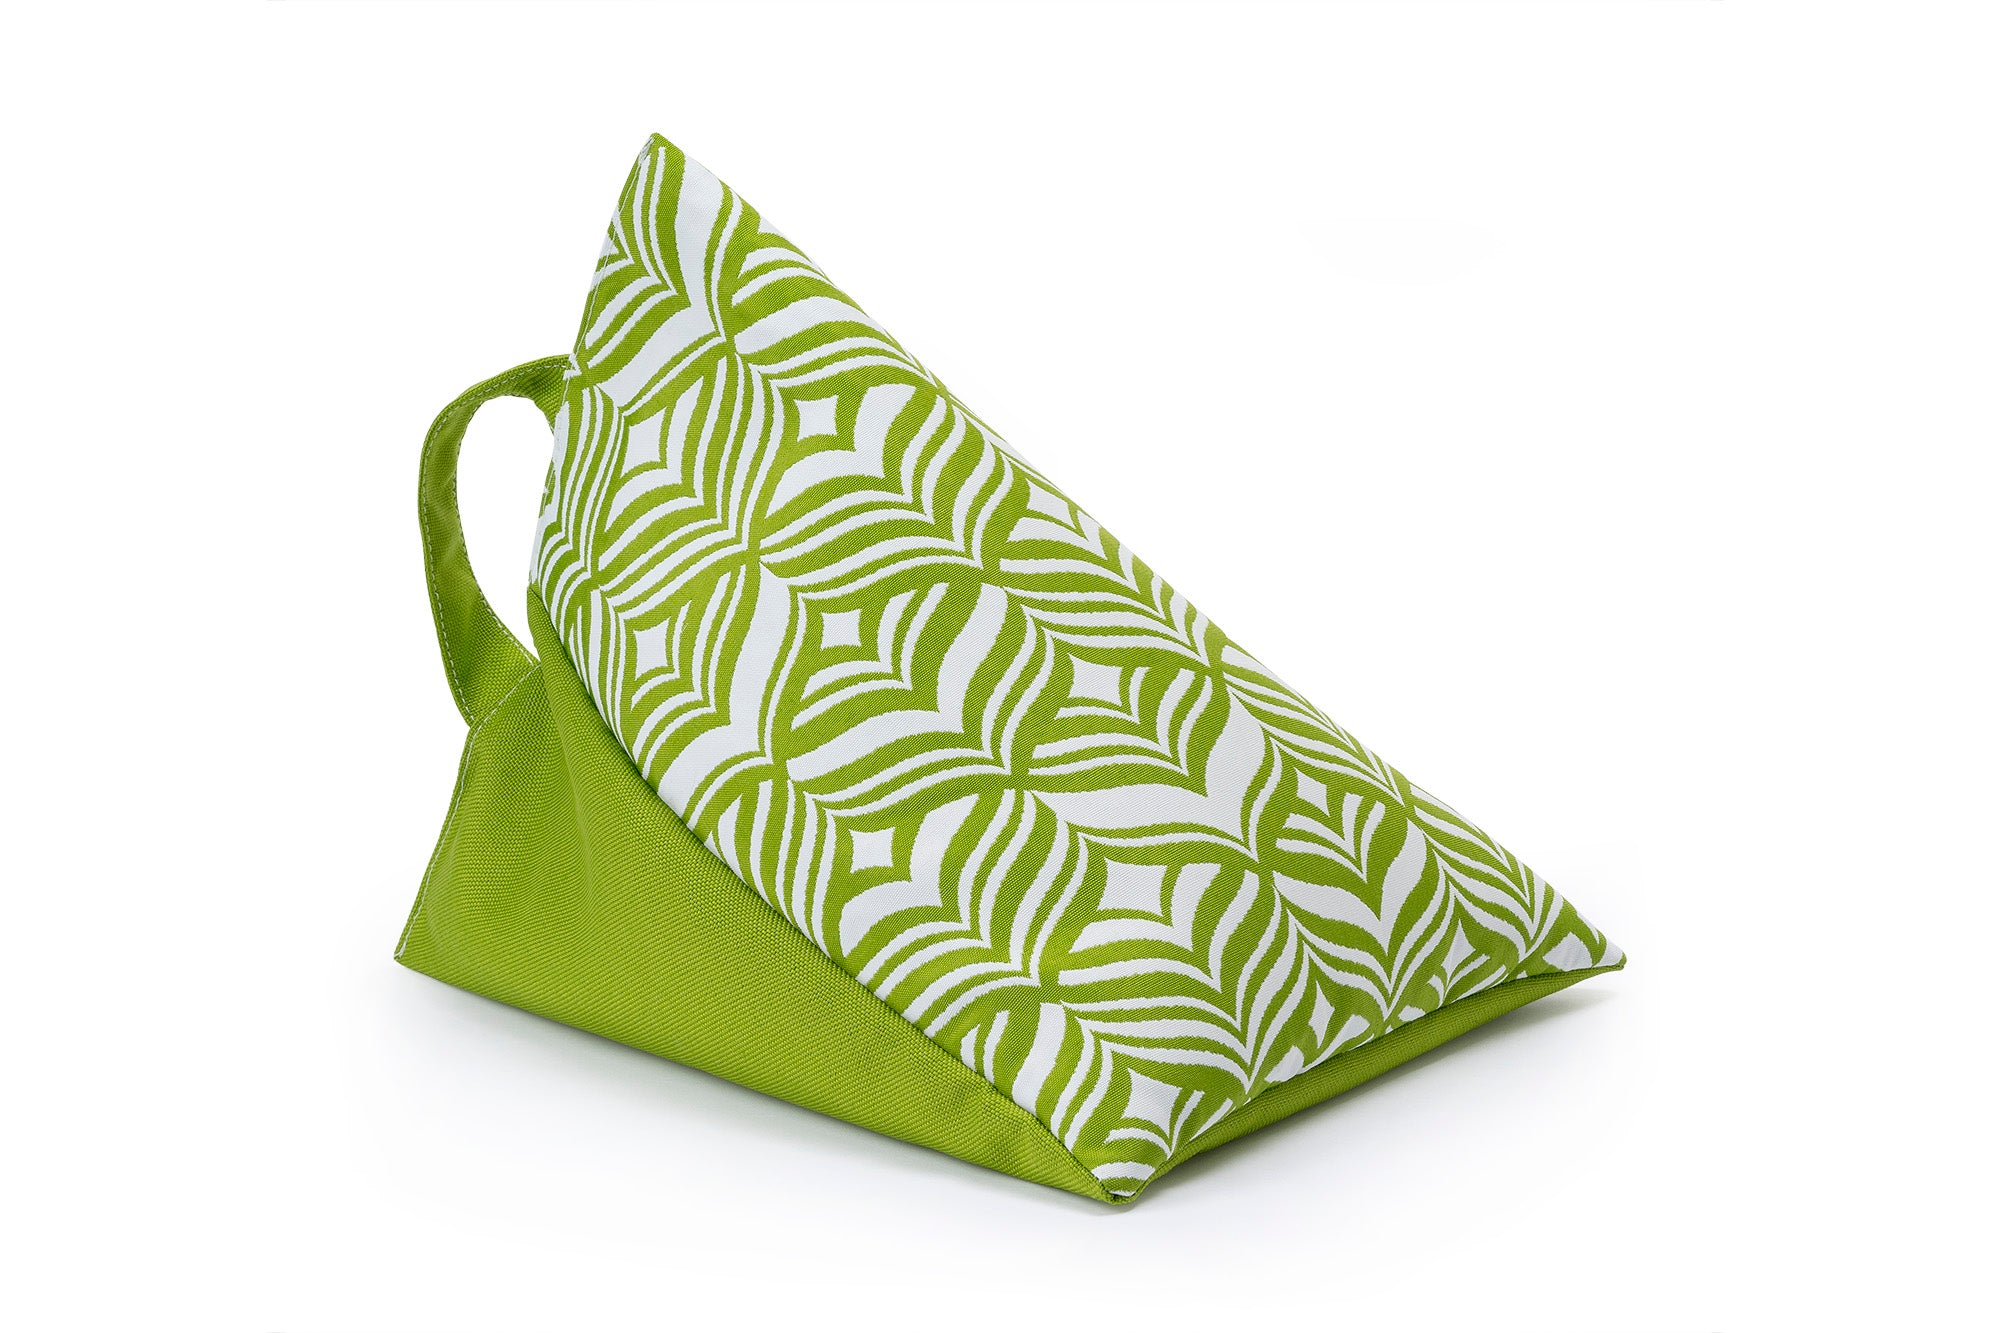 iPad, Tablet & eReader Bean Bag Stand in Tulip Green/Green Base